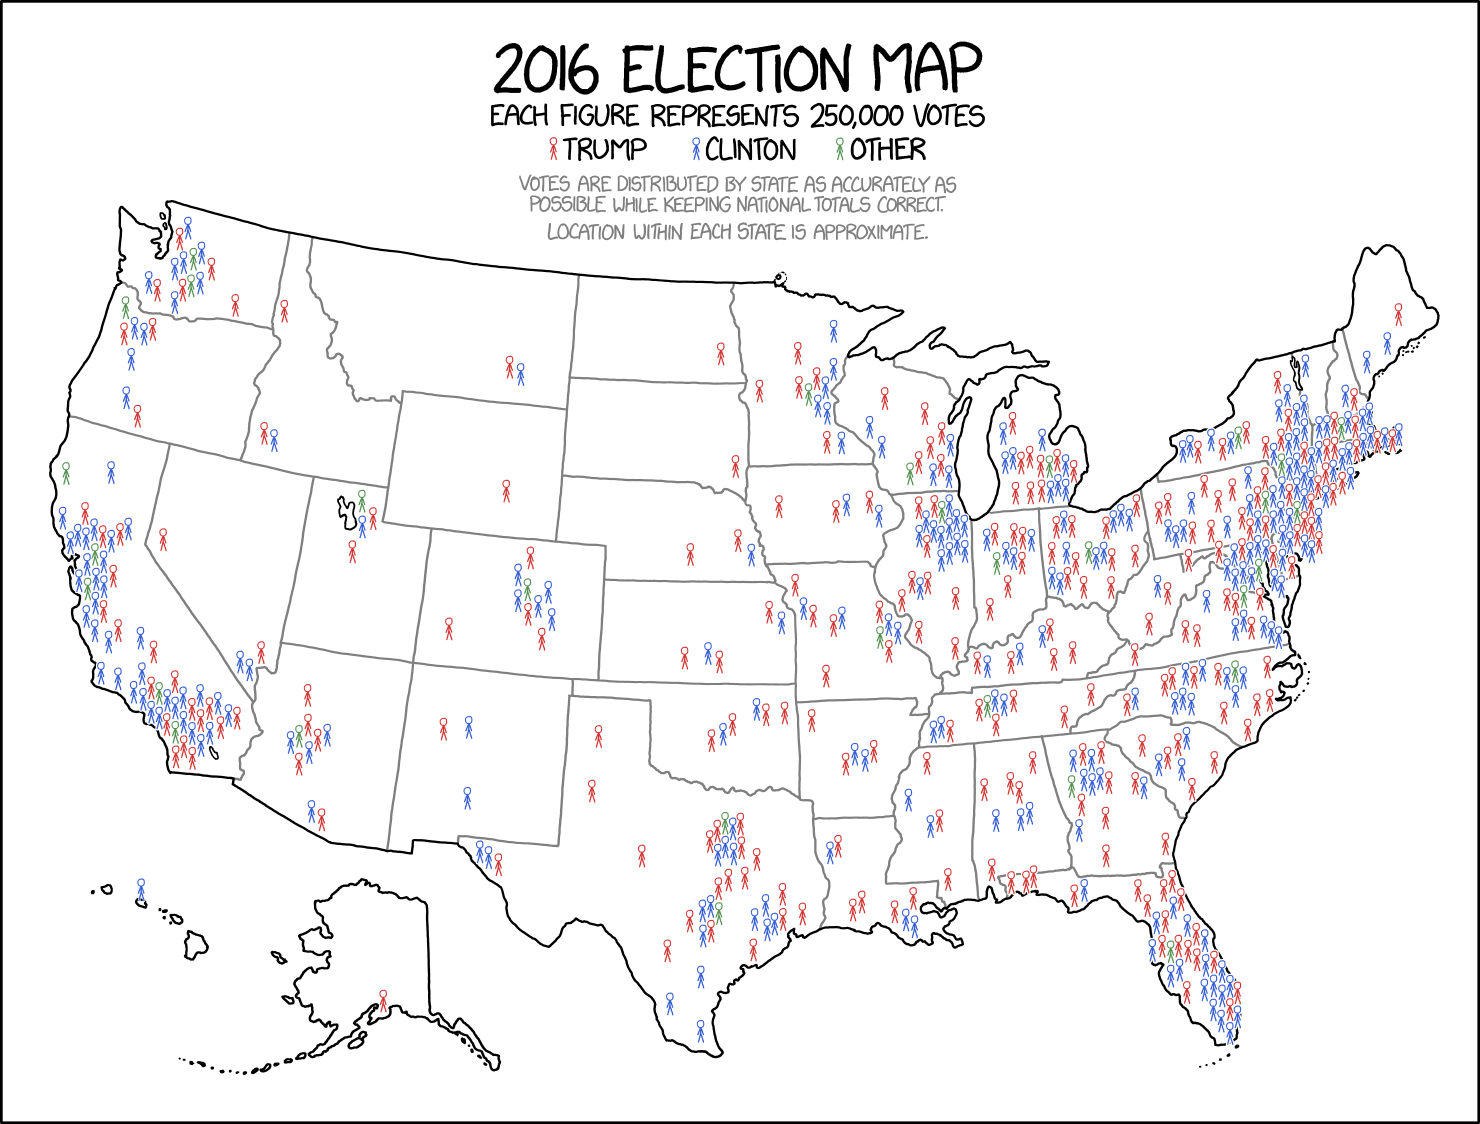 xkcd: 2016 Election Map